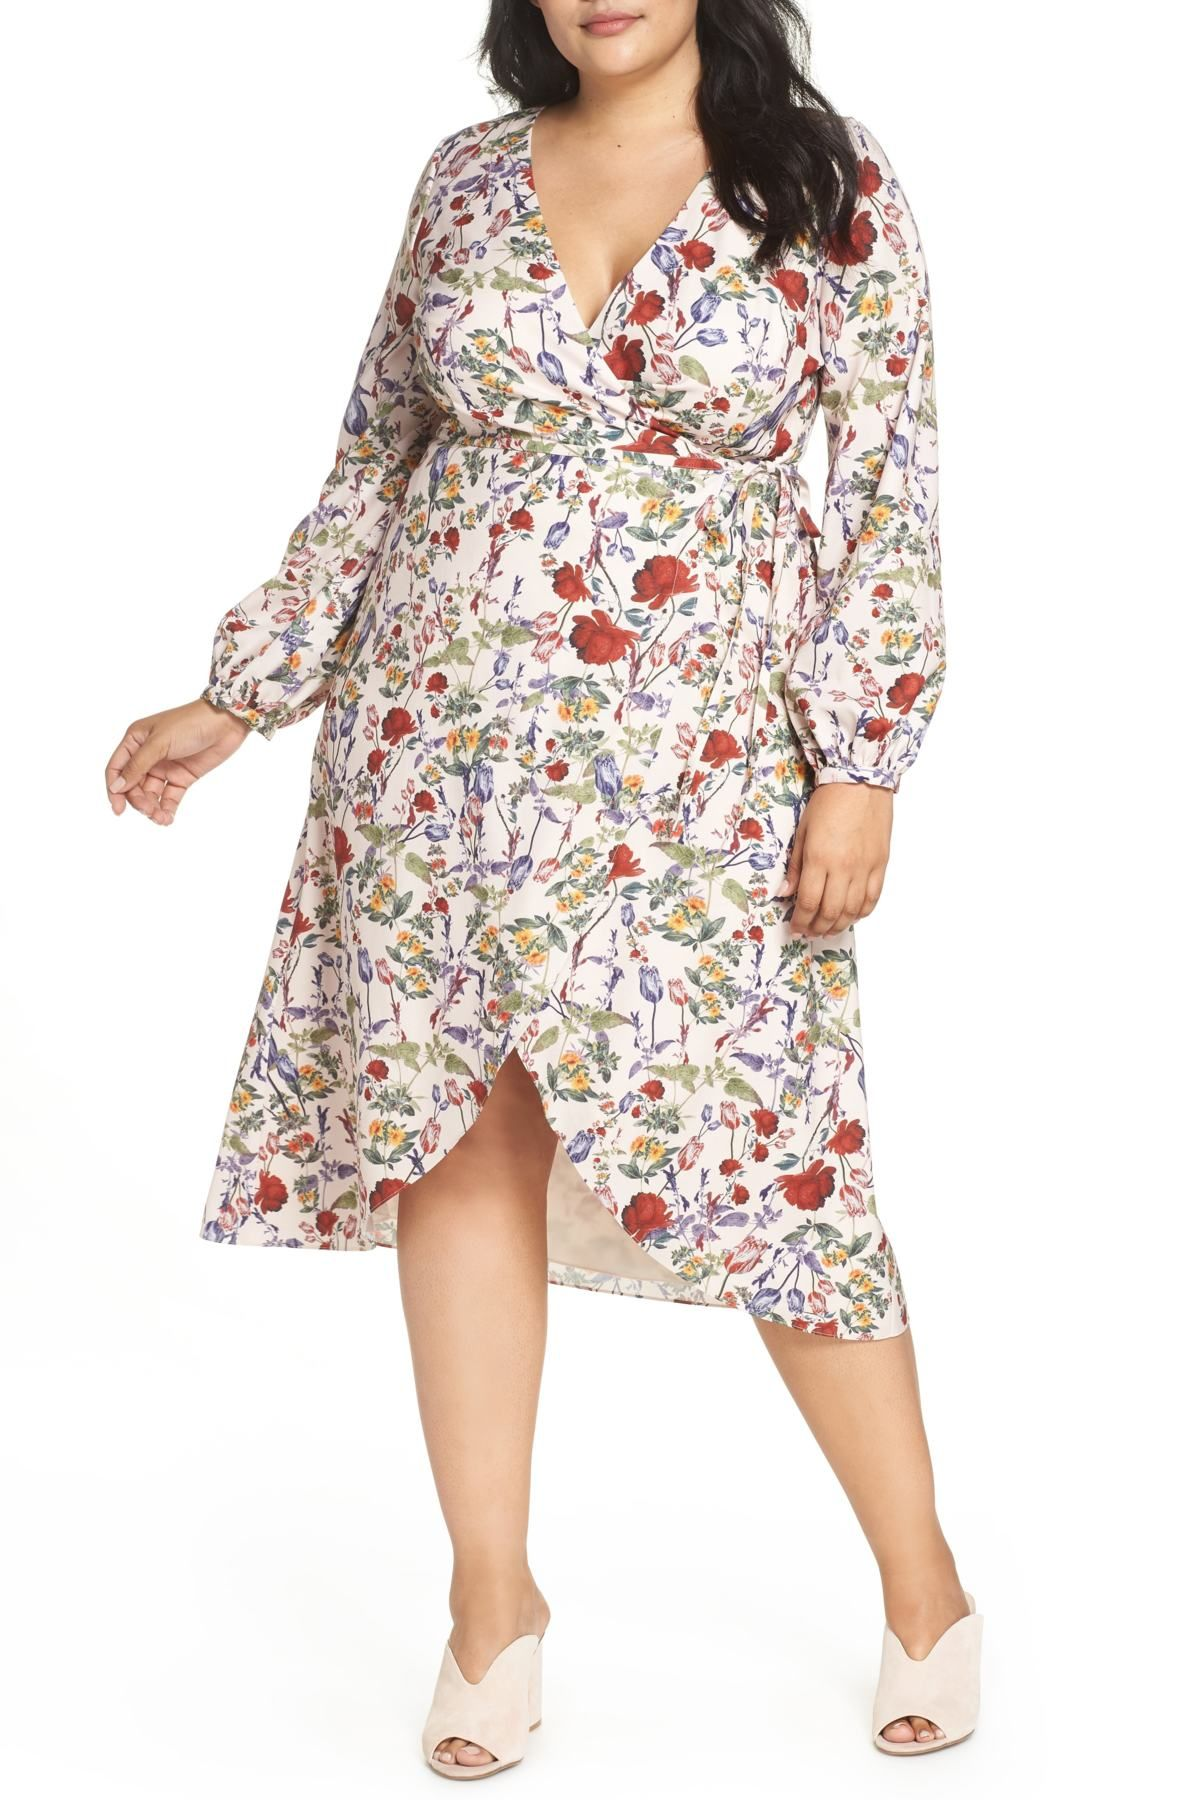 Floral Wrap Hi-Lo Dress (Plus Size) in 2019 | Personal Style ...